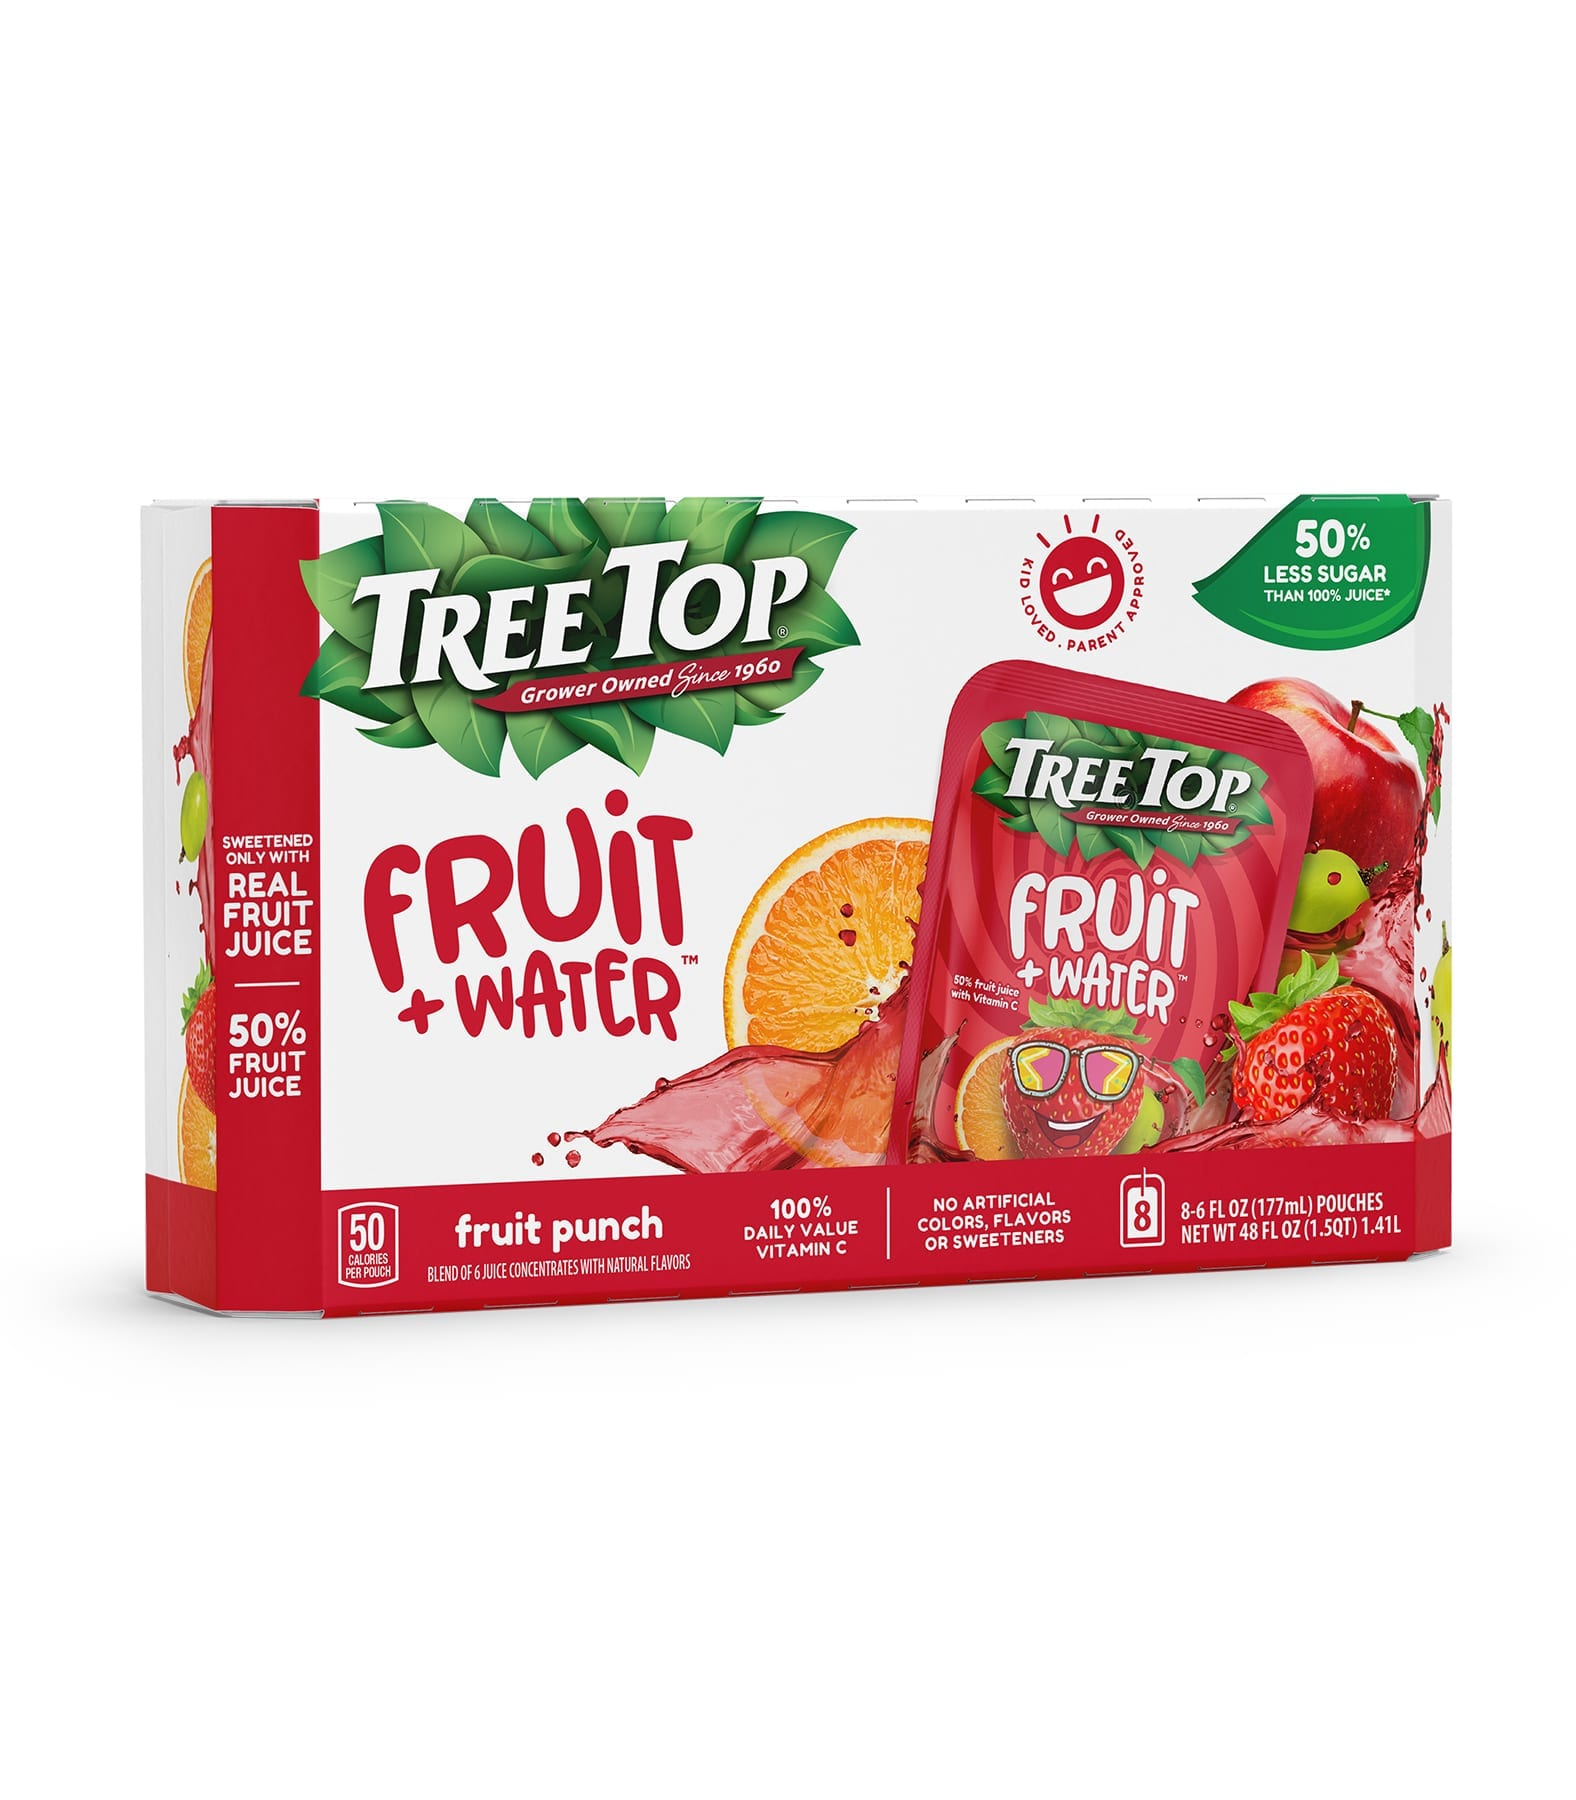 treetop package design company